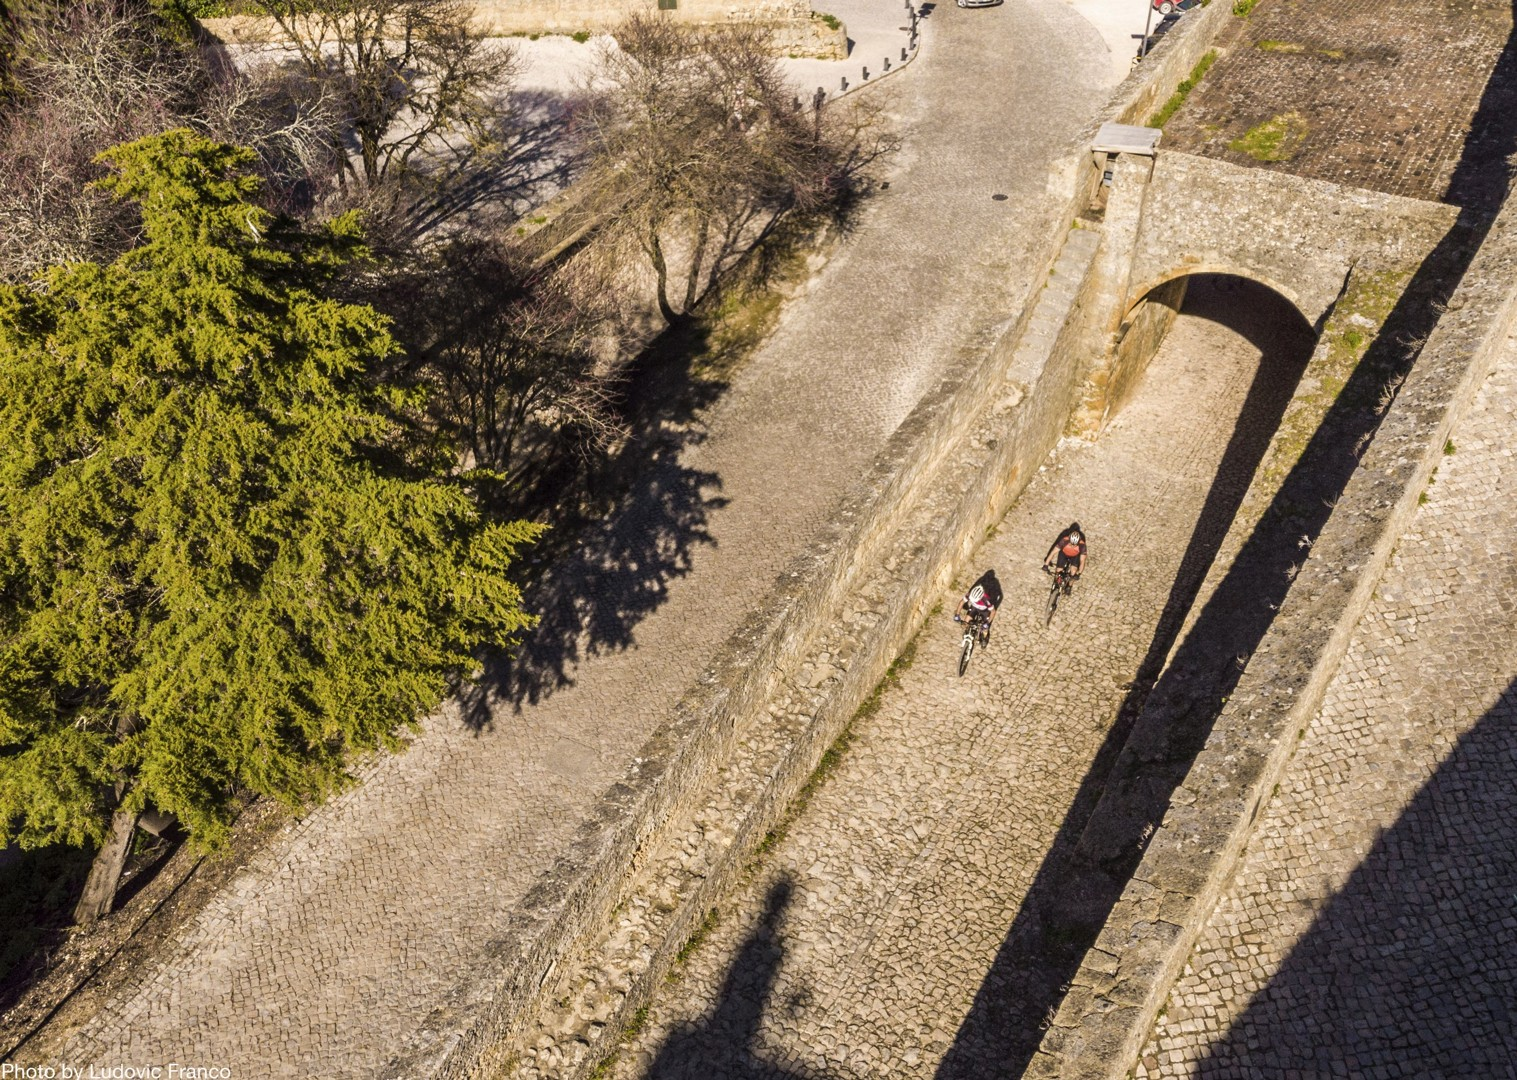 local-villages-cycling-holiday-on-atlantic-coast-portugal.jpg - Portugal - Atlantic Trails - Guided Mountain Bike Holiday - Mountain Biking